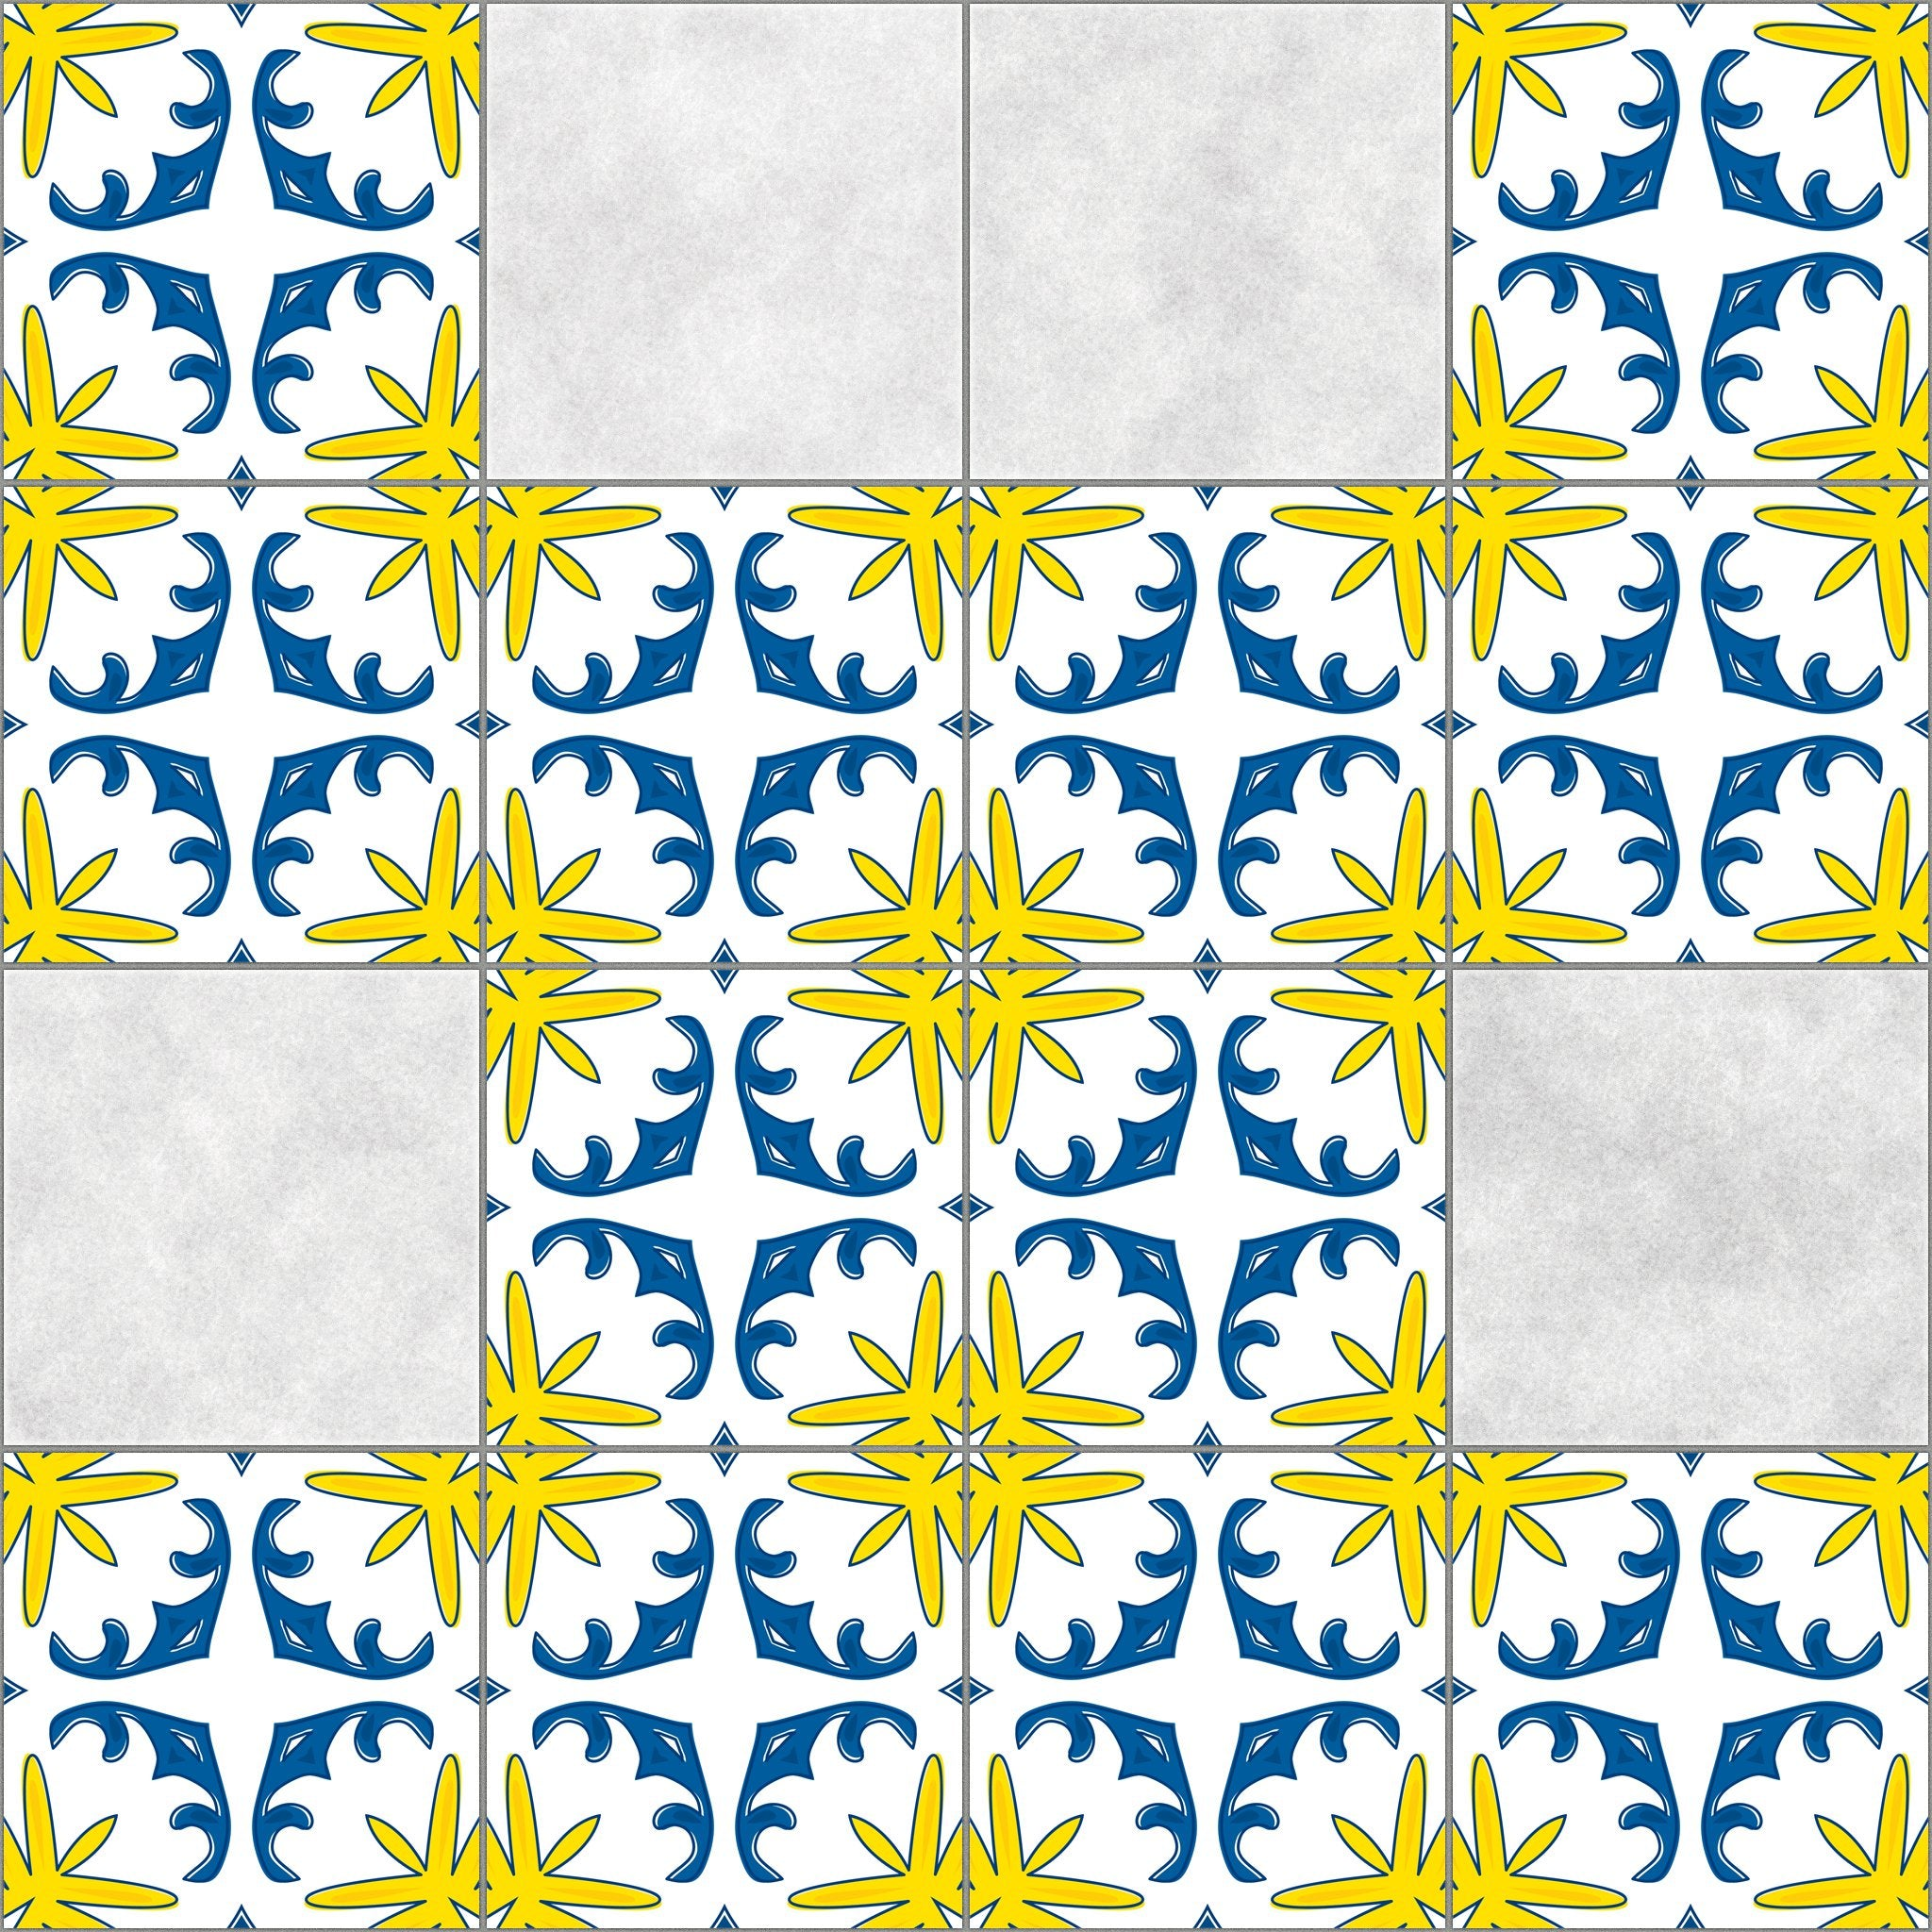 Tile stickers - KP064